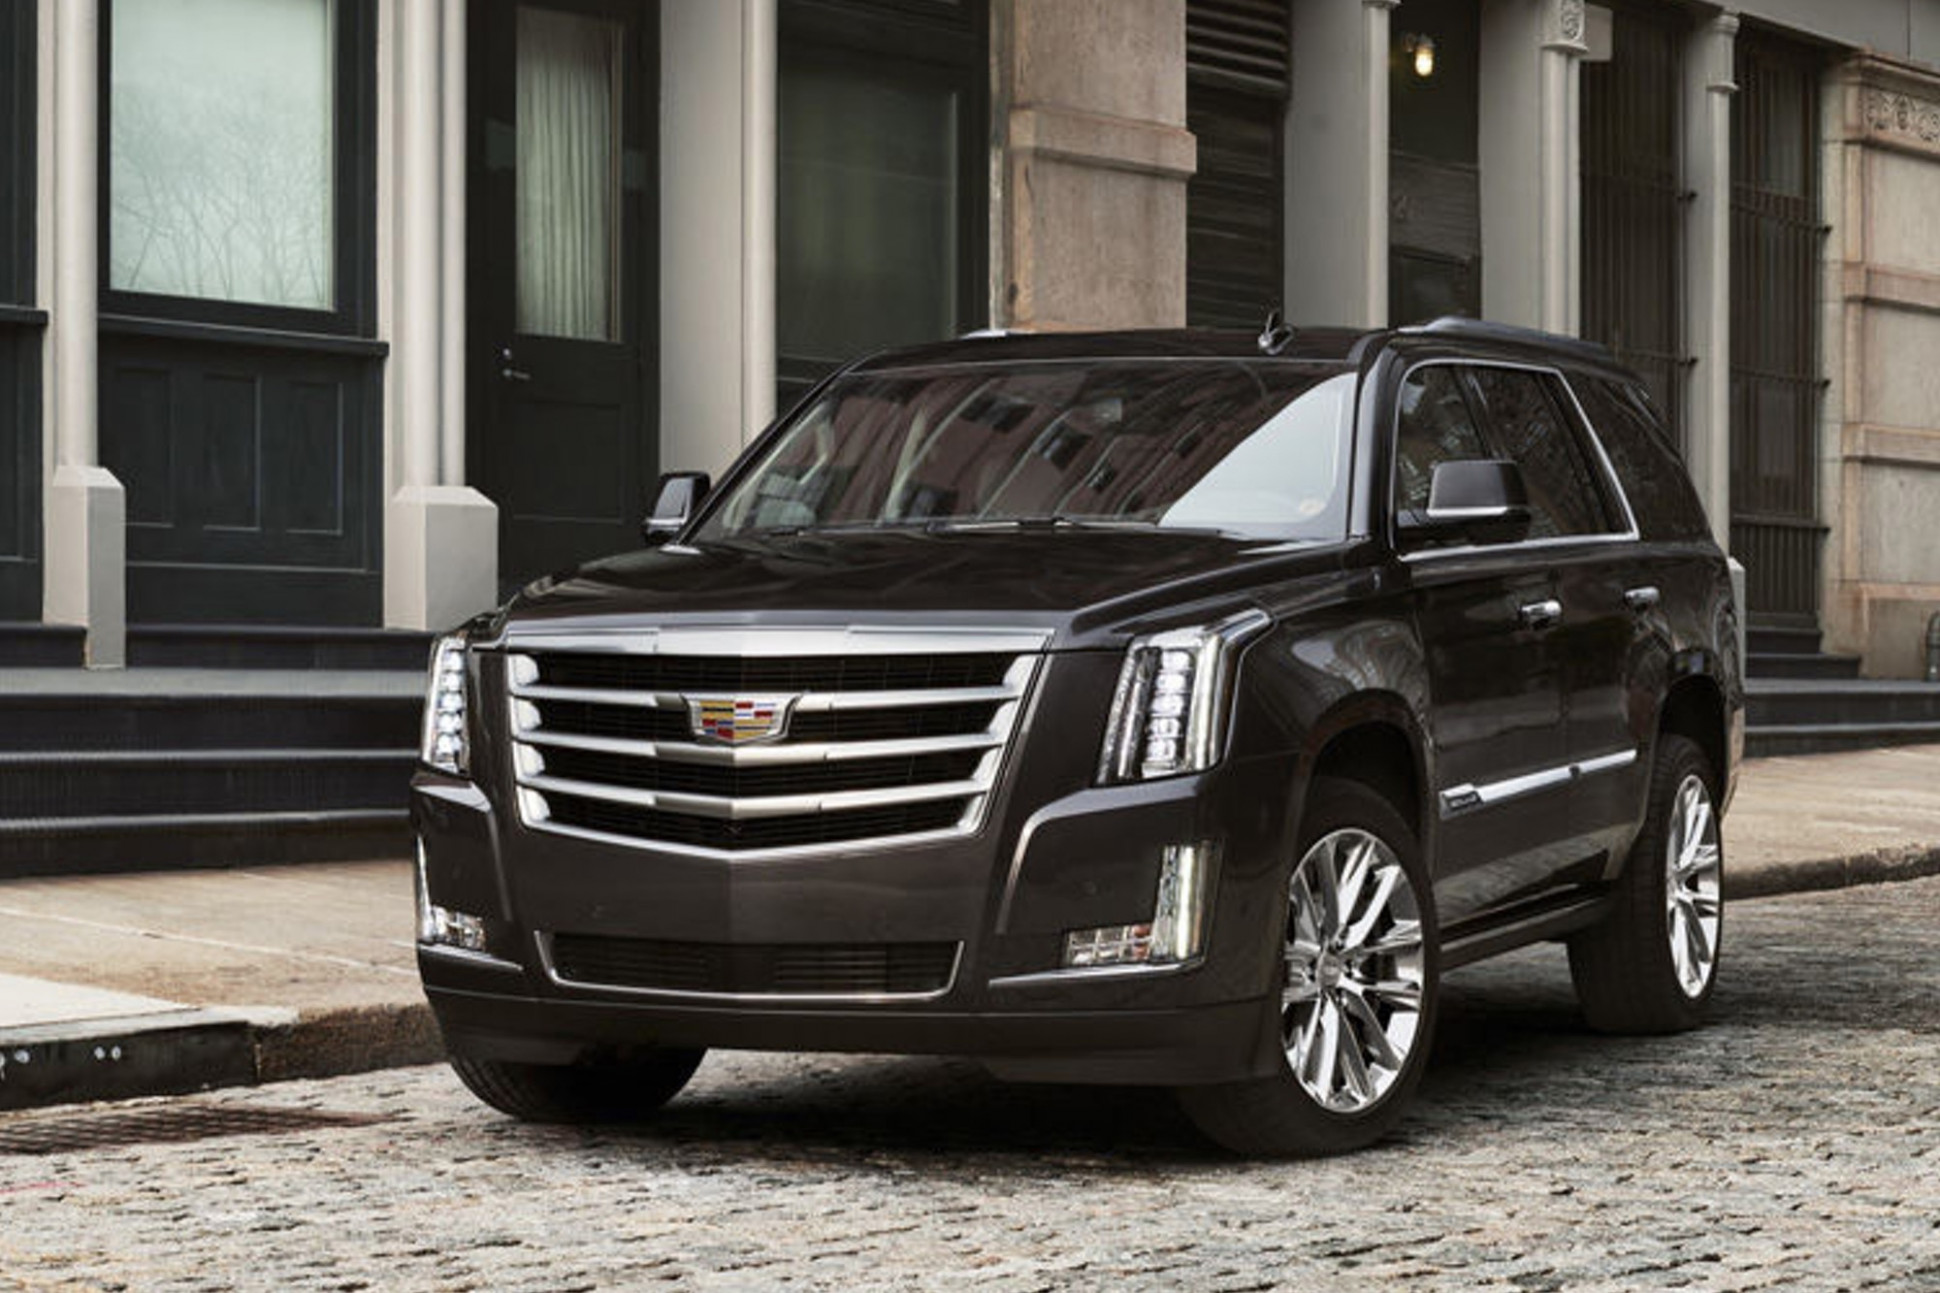 7 Cadillac Escalade: Here's What's New And Different | GM Authority